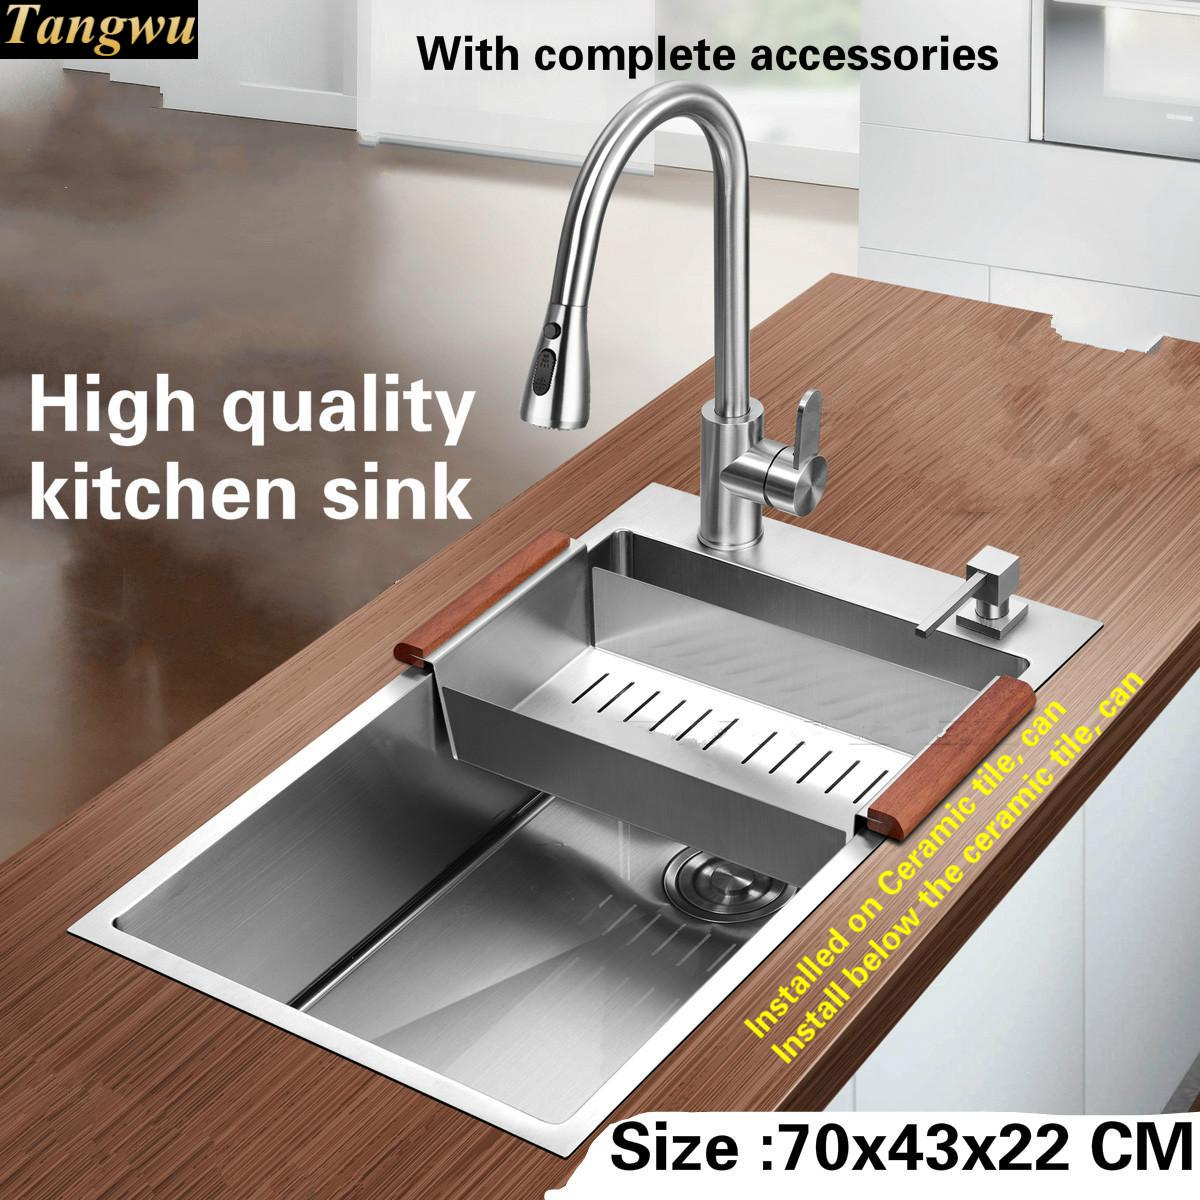 tangwu high quality food grade 304 stainless steel kitchen sink 1 2 rh aliexpress com high quality kitchen sink strainer high quality ceramic kitchen sinks